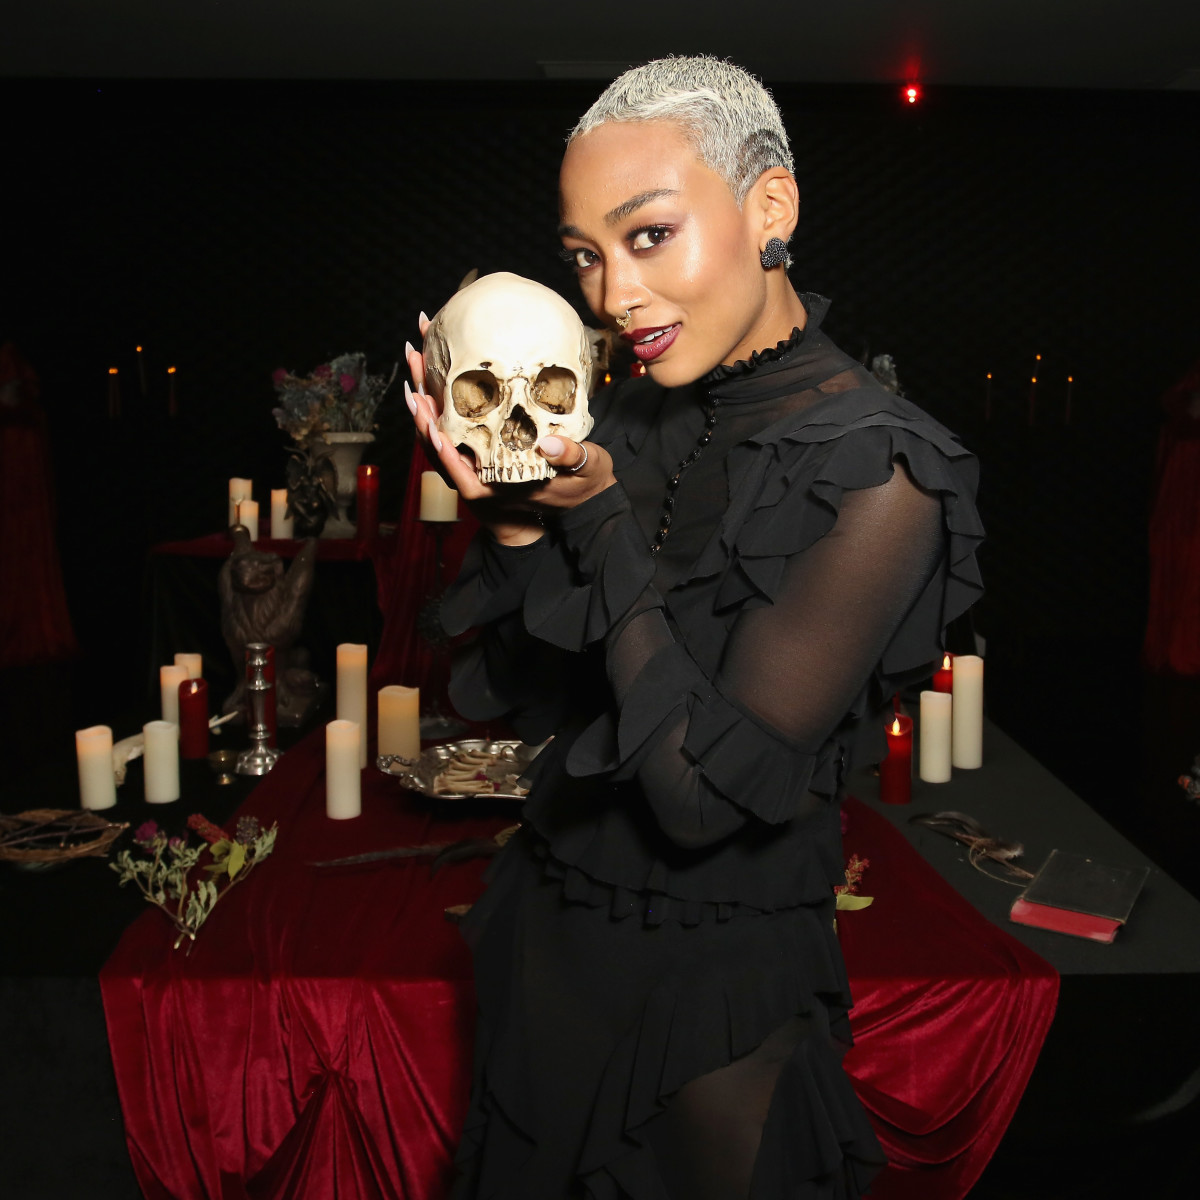 Tati Gabrielle and a guest at the 'Chilling Adventures of Sabrina' premiere in October 2018. Photo: Rachel Murray/Getty Images for Netflix